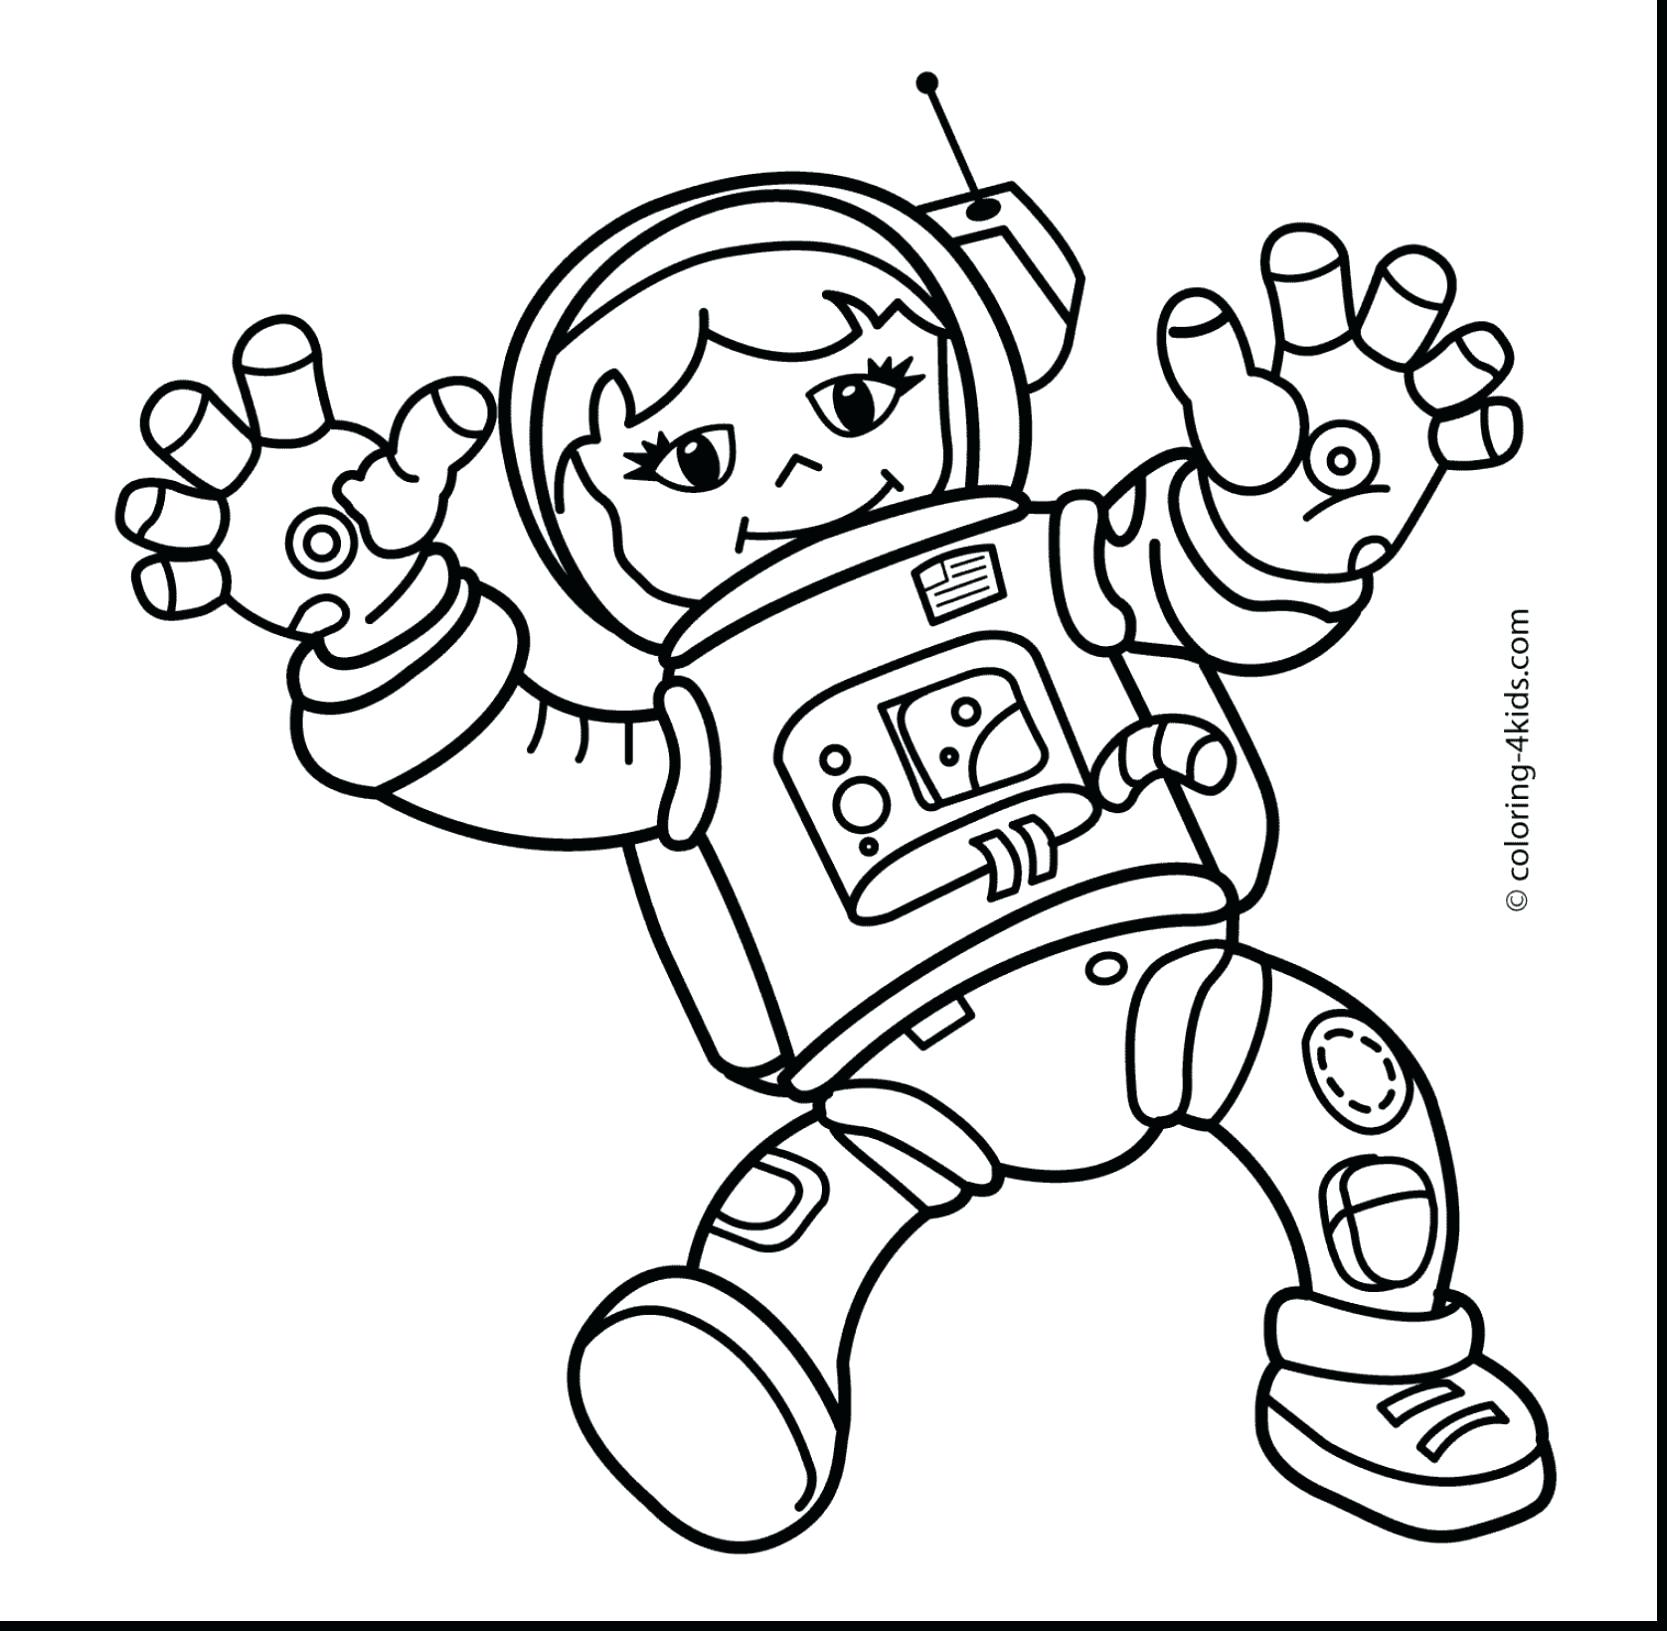 1667x1631 Coloring Pages Astronaut Coloring Pages Cartoon Astronaut